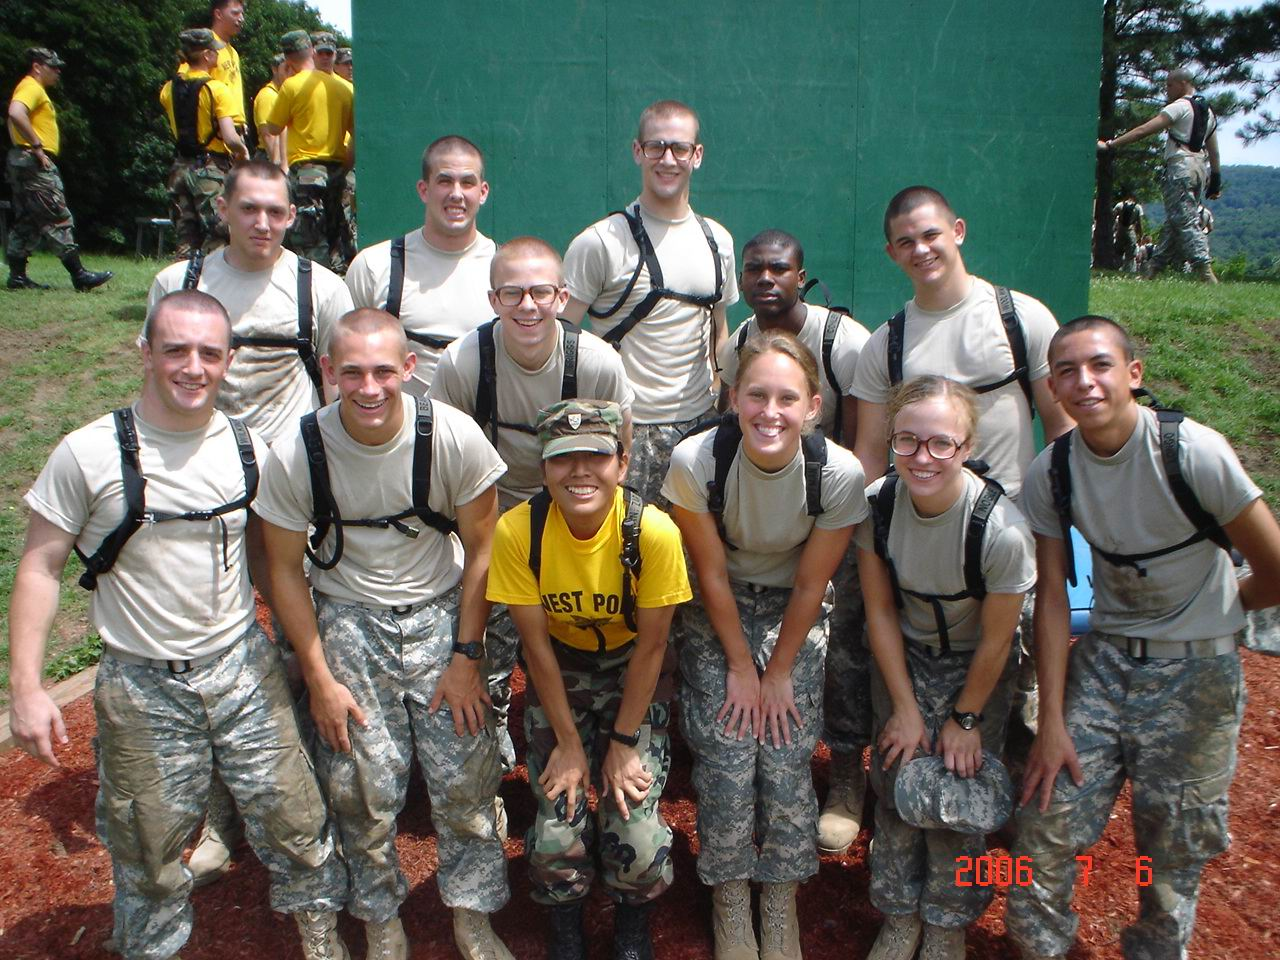 [Squad+Leader+of+11+new+cadets+in+Basic+training.jpg]